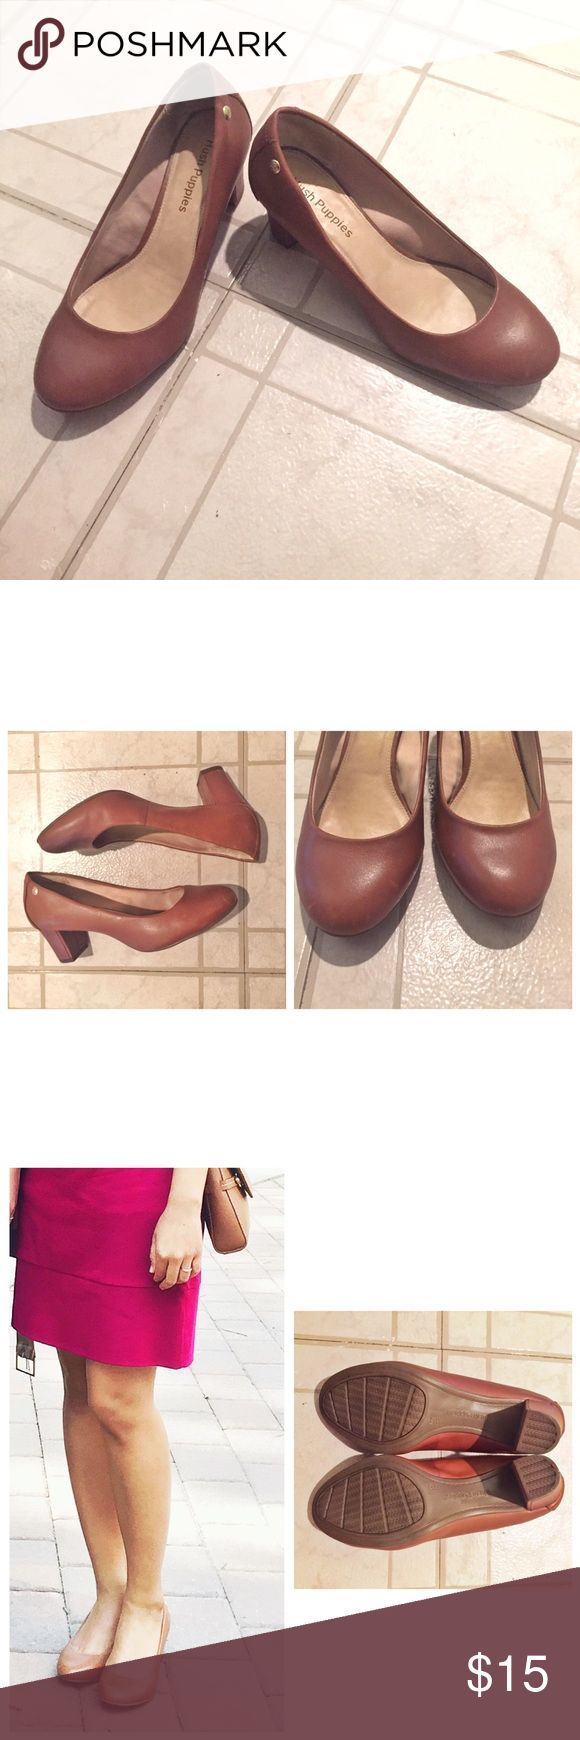 Leather Pumps Hush Puppies leather pumps with rubber sole. Very classic and so comfortable! Great for work! Has signs of wear pictured above but still has lots of life left. The heel is about 2 inches. Hush Puppies Shoes